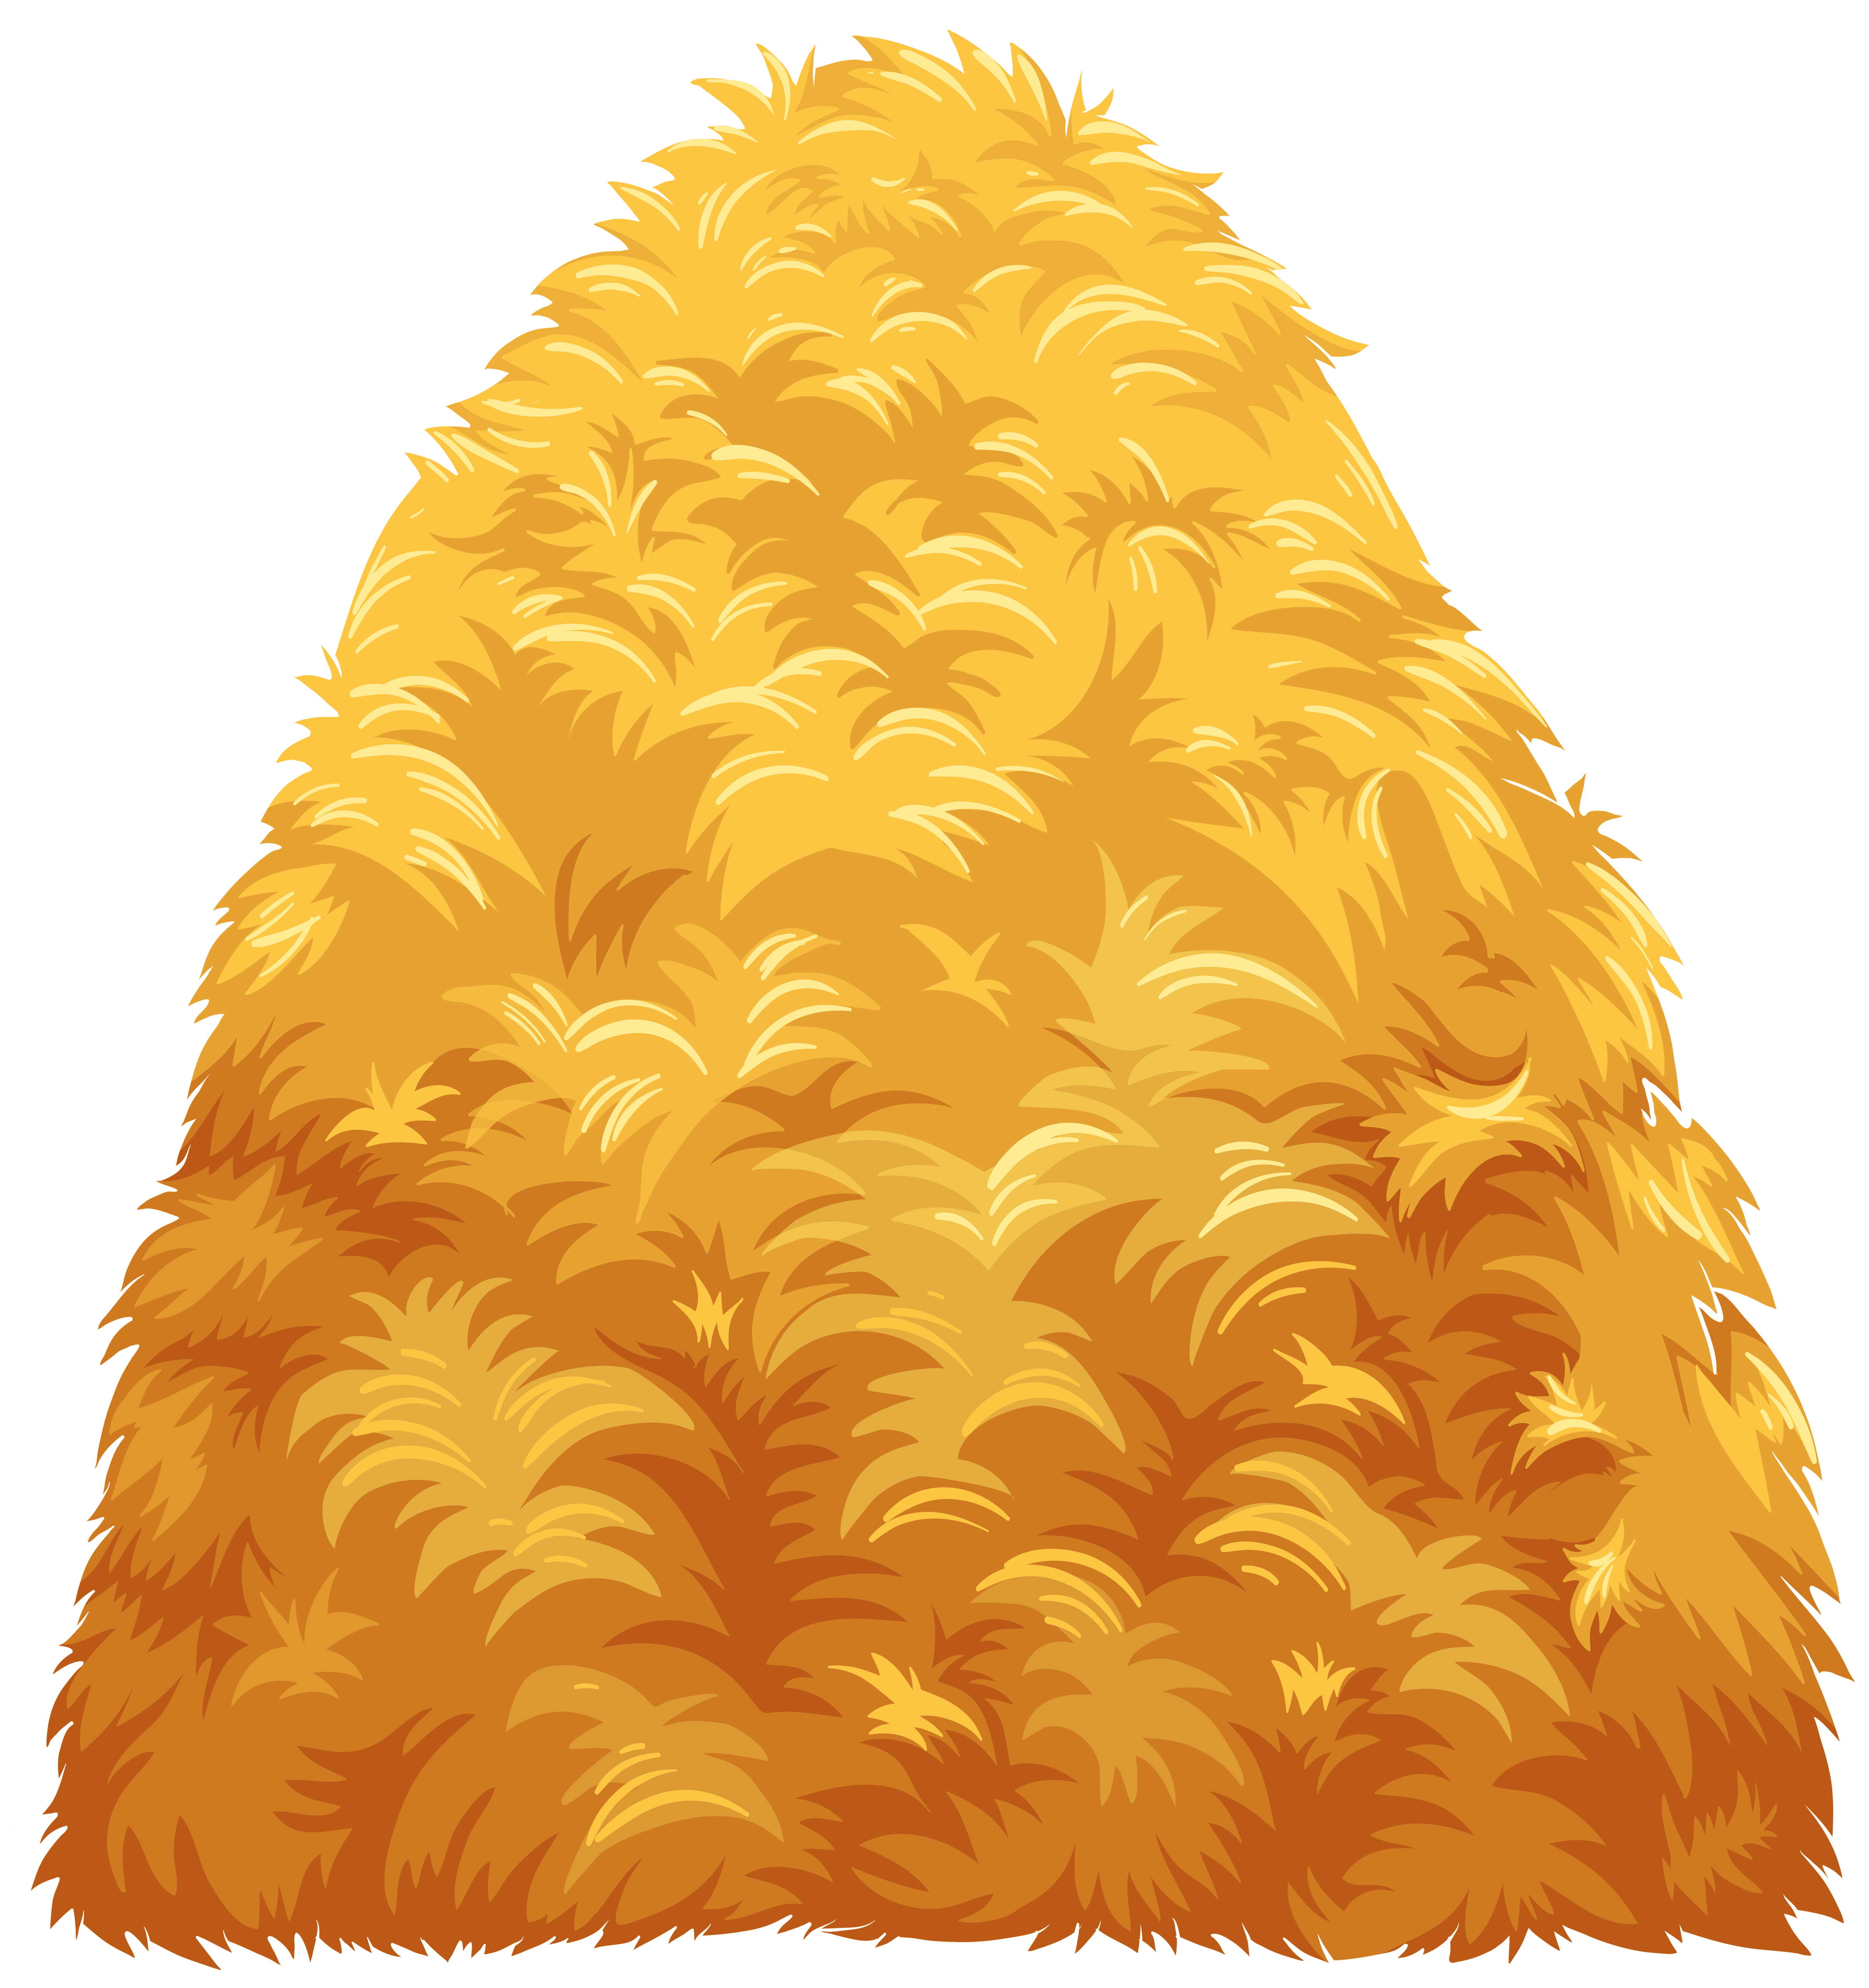 Haystack PNG Clipart Image.